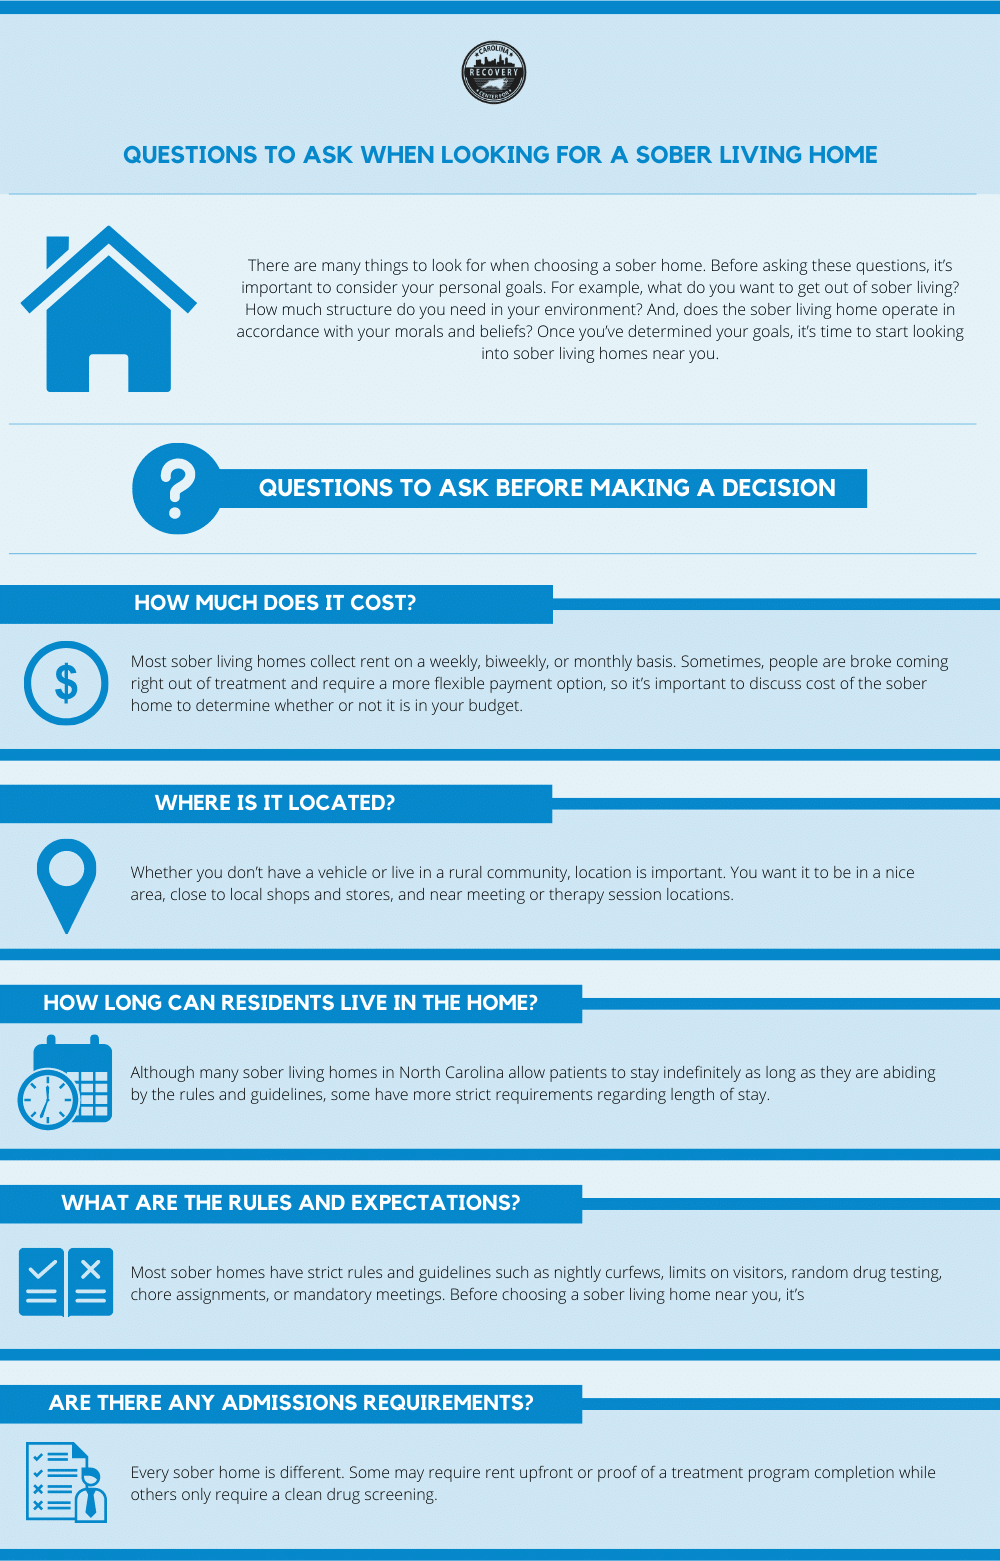 Questions to Ask When Looking For a Sober Living Home